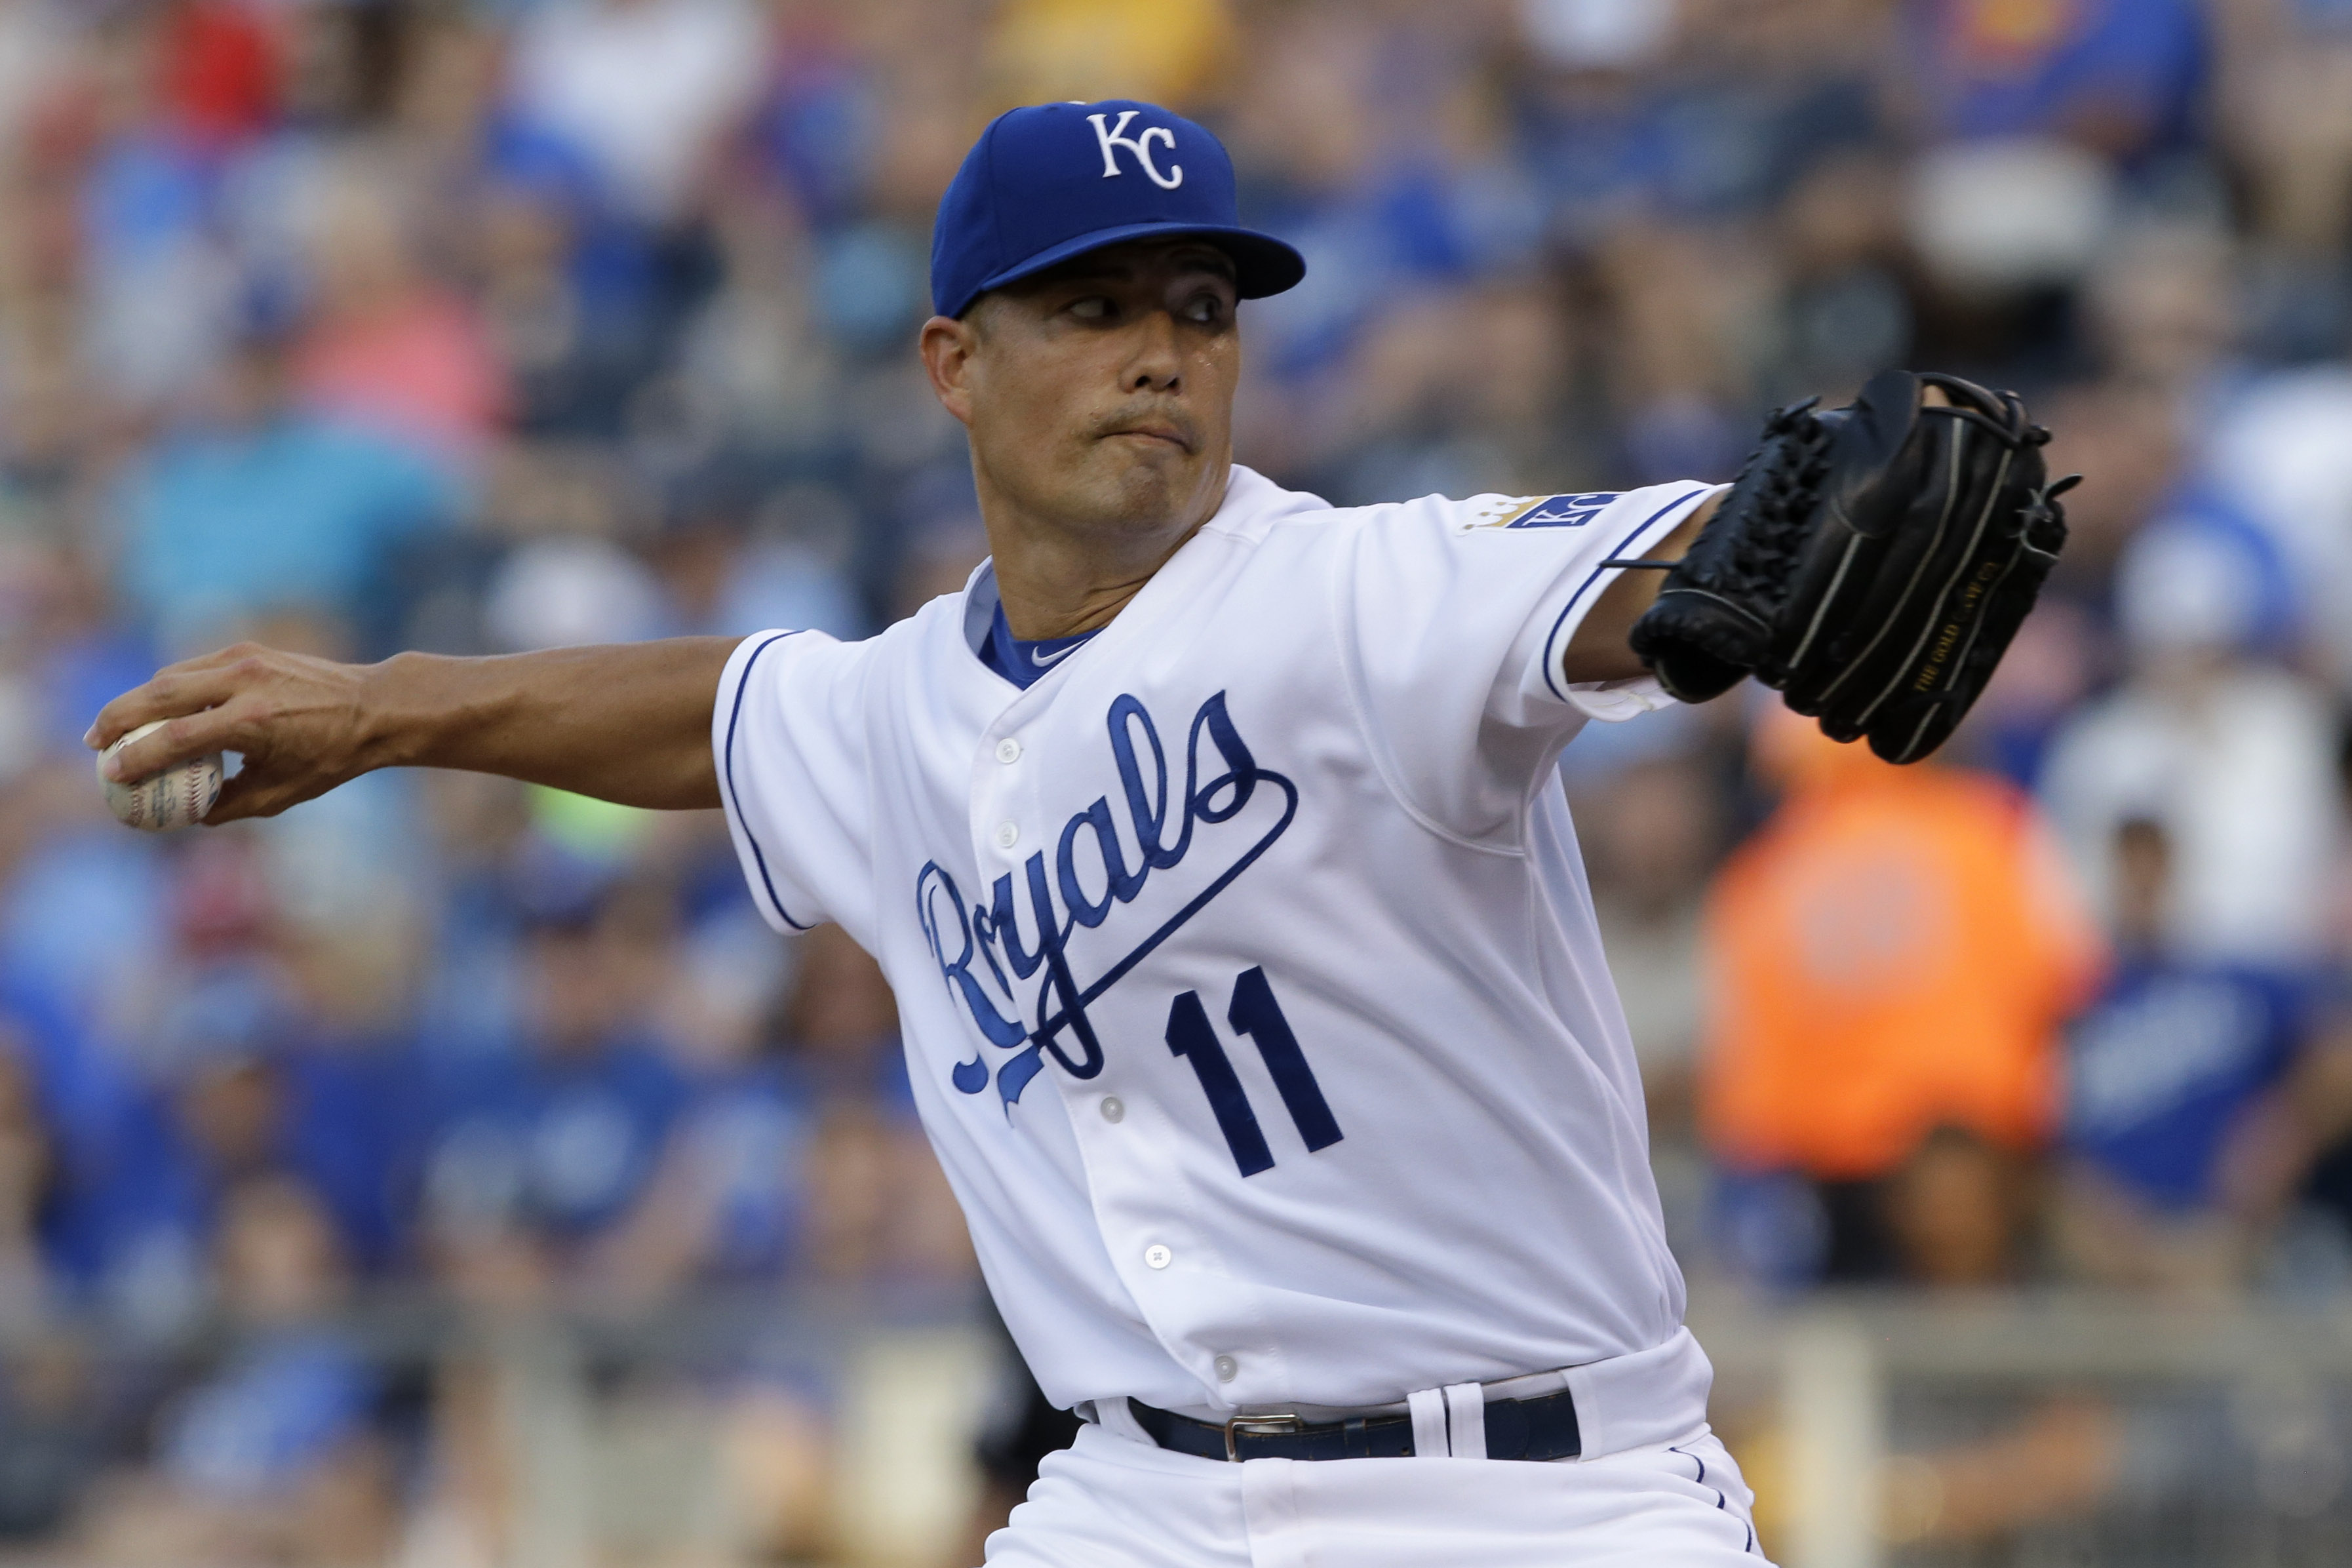 Kansas City Royals starting pitcher Jeremy Guthrie delivers to a Minnesota Twins batter during the first inning of a baseball game at Kauffman Stadium in Kansas City, Mo., Friday, July 3, 2015.